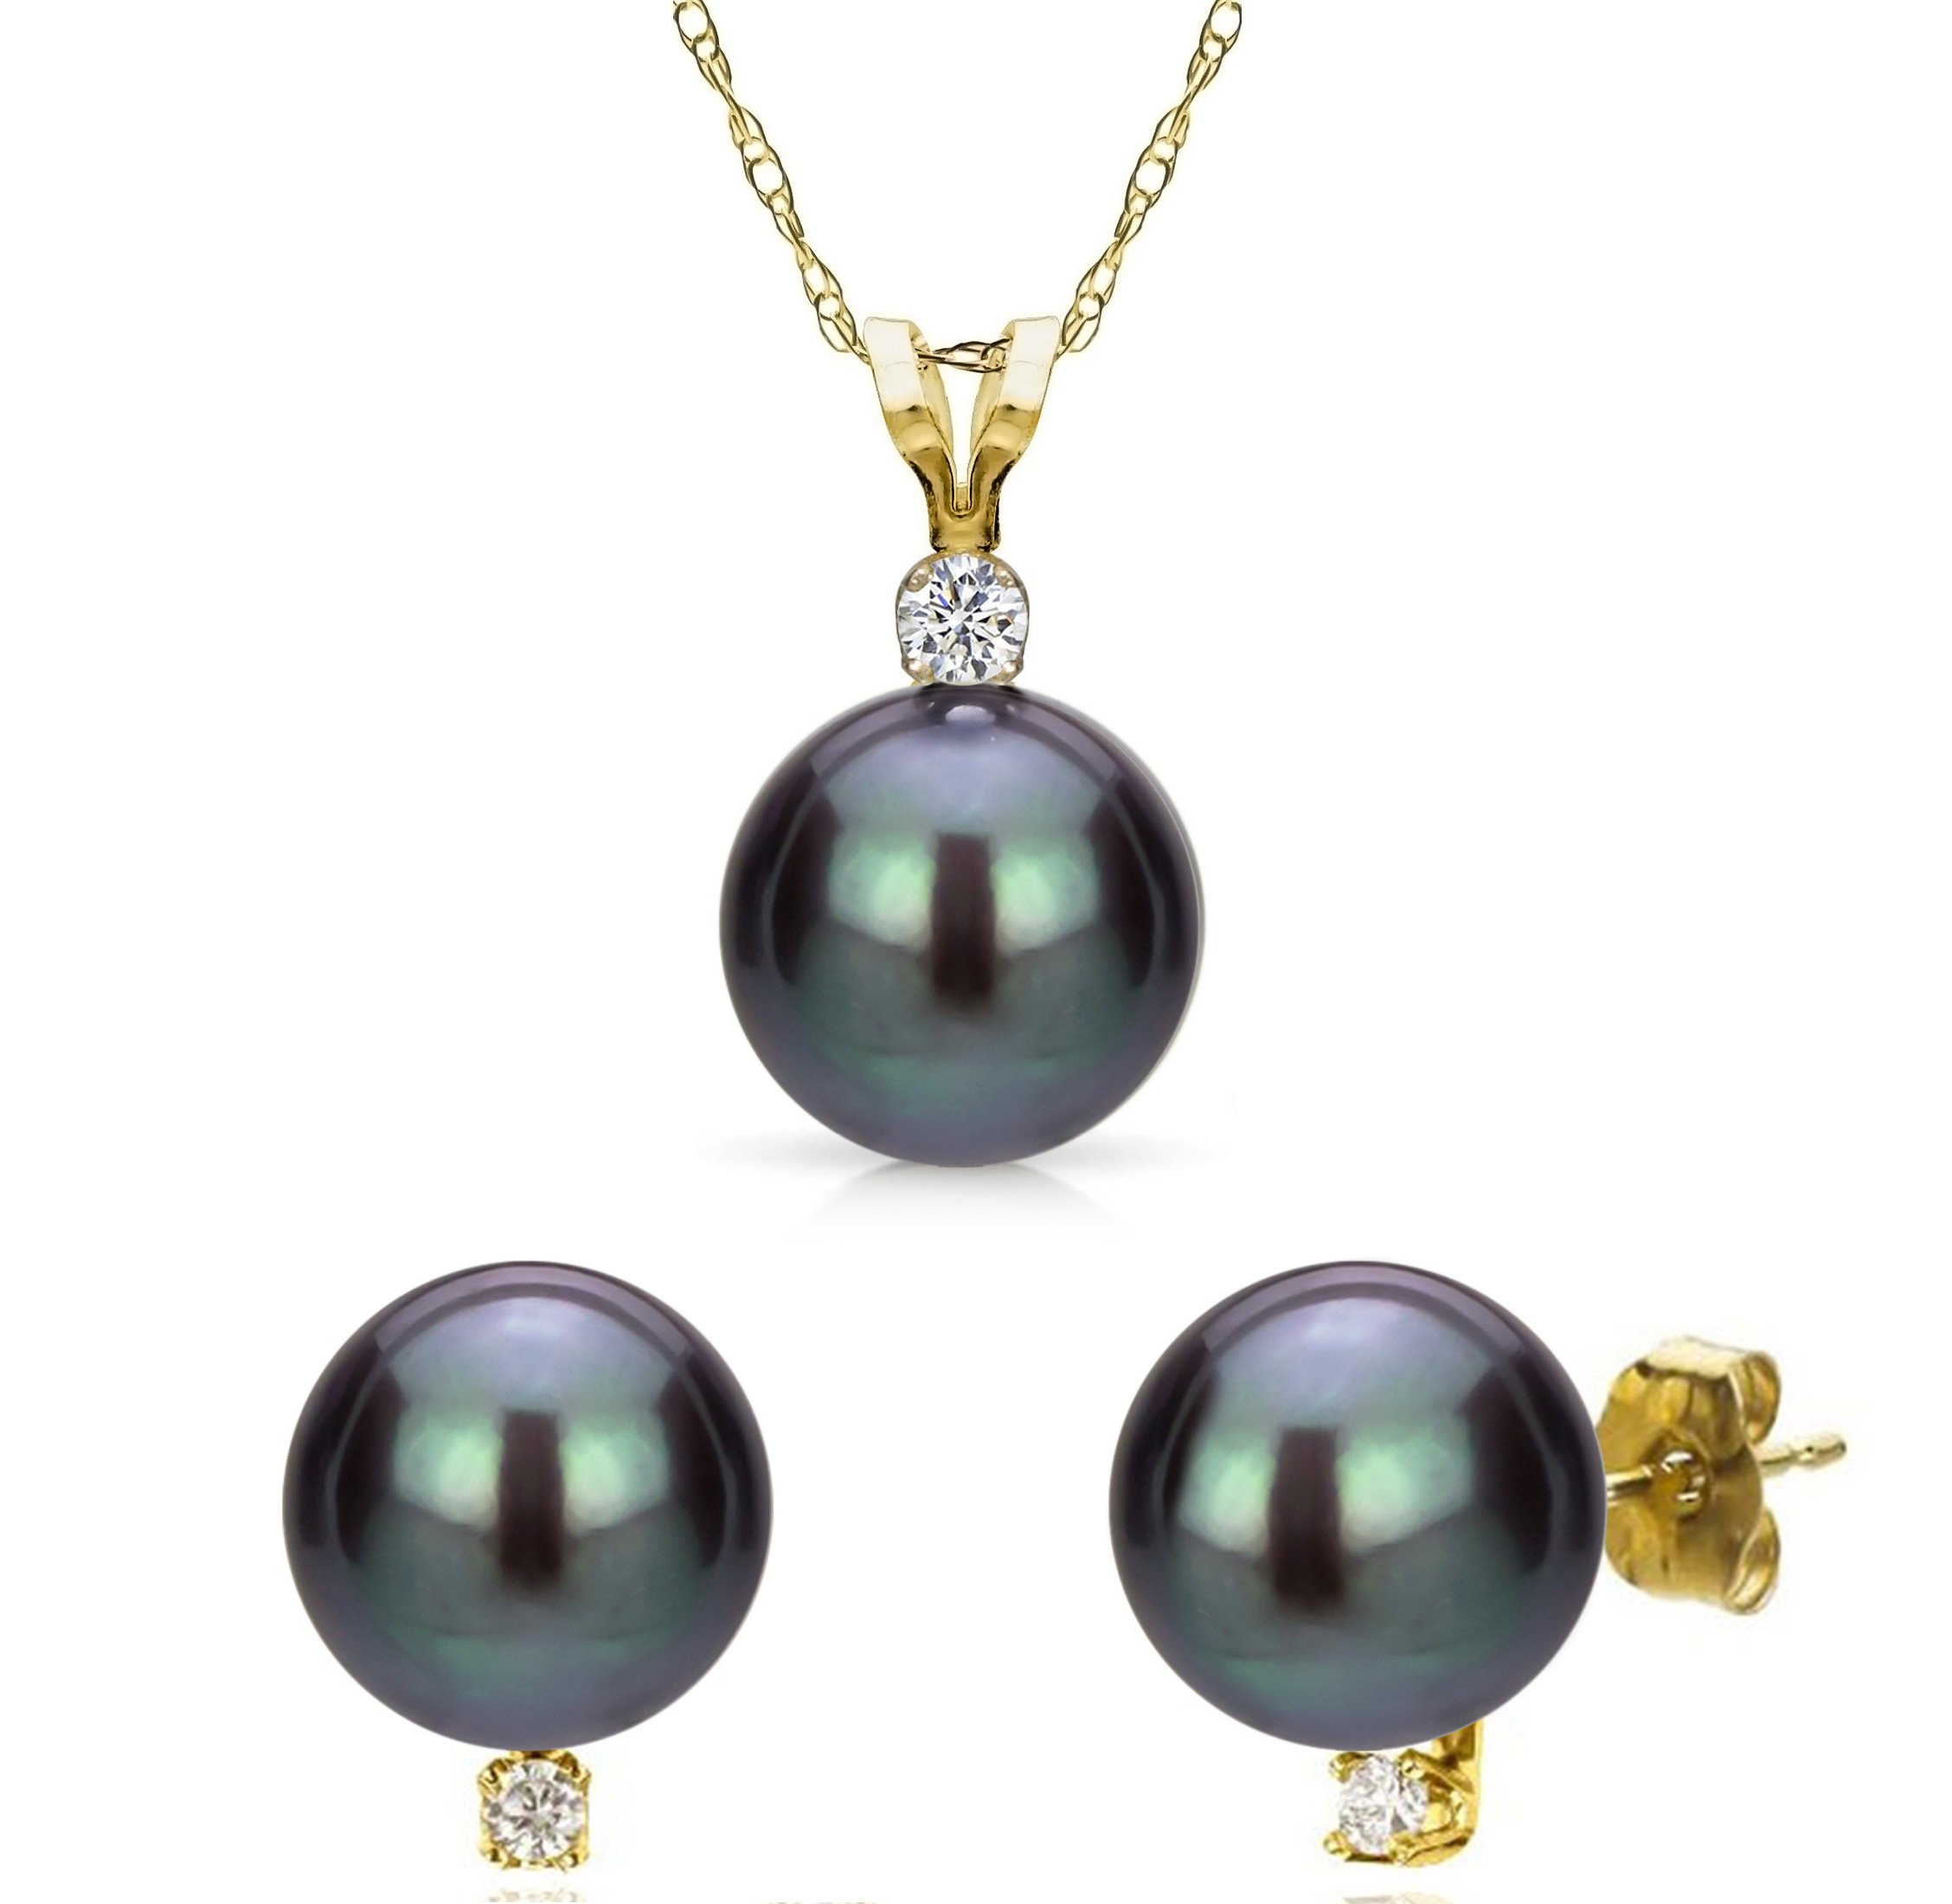 Freshwater Cultured Black Pearl Necklace Pendant 14K Yellow Gold Stud Earring Wedding Set 6-6.5mm 18 inch by La Regis Jewelry (Image #1)